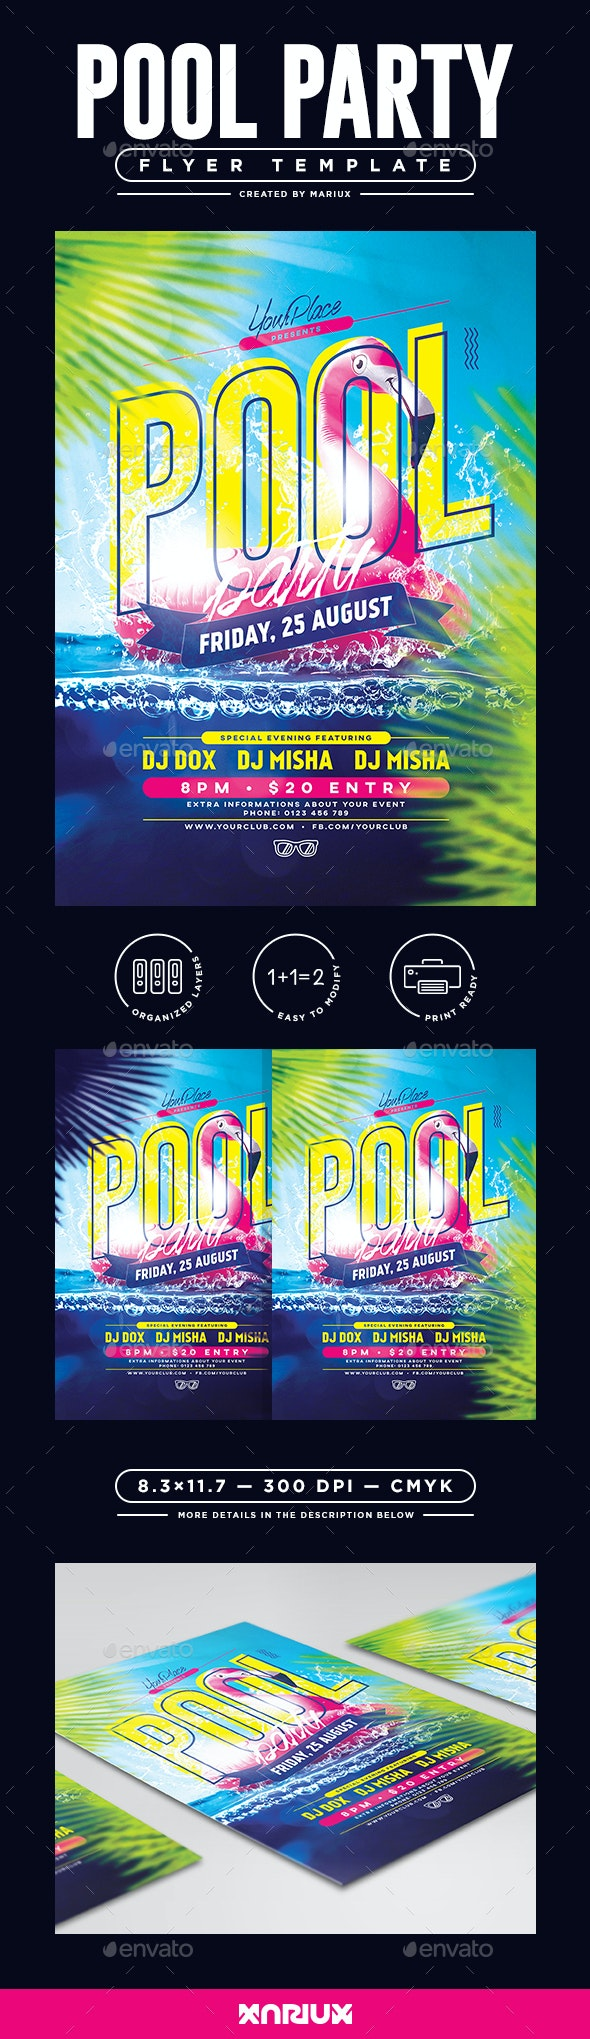 Pool Party Flyer/Poster - Clubs & Parties Events